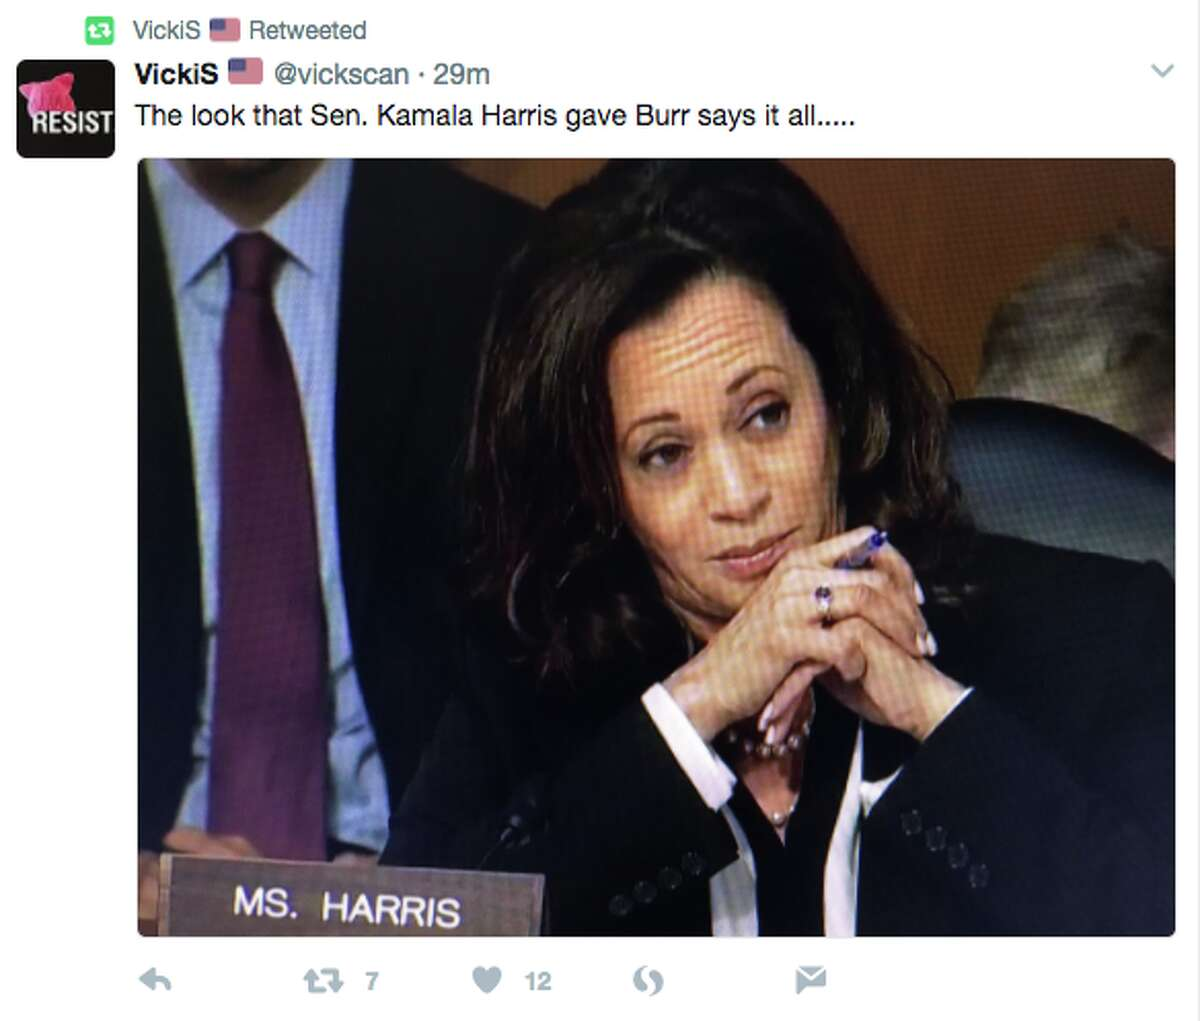 Twitter reacts to Sen. Kamala Harris (D-CA) during the Senate Intelligence Committee questioning, where she was interrupted by Sen. John McCain (R-AZ) and Richard Burr (R-NC).